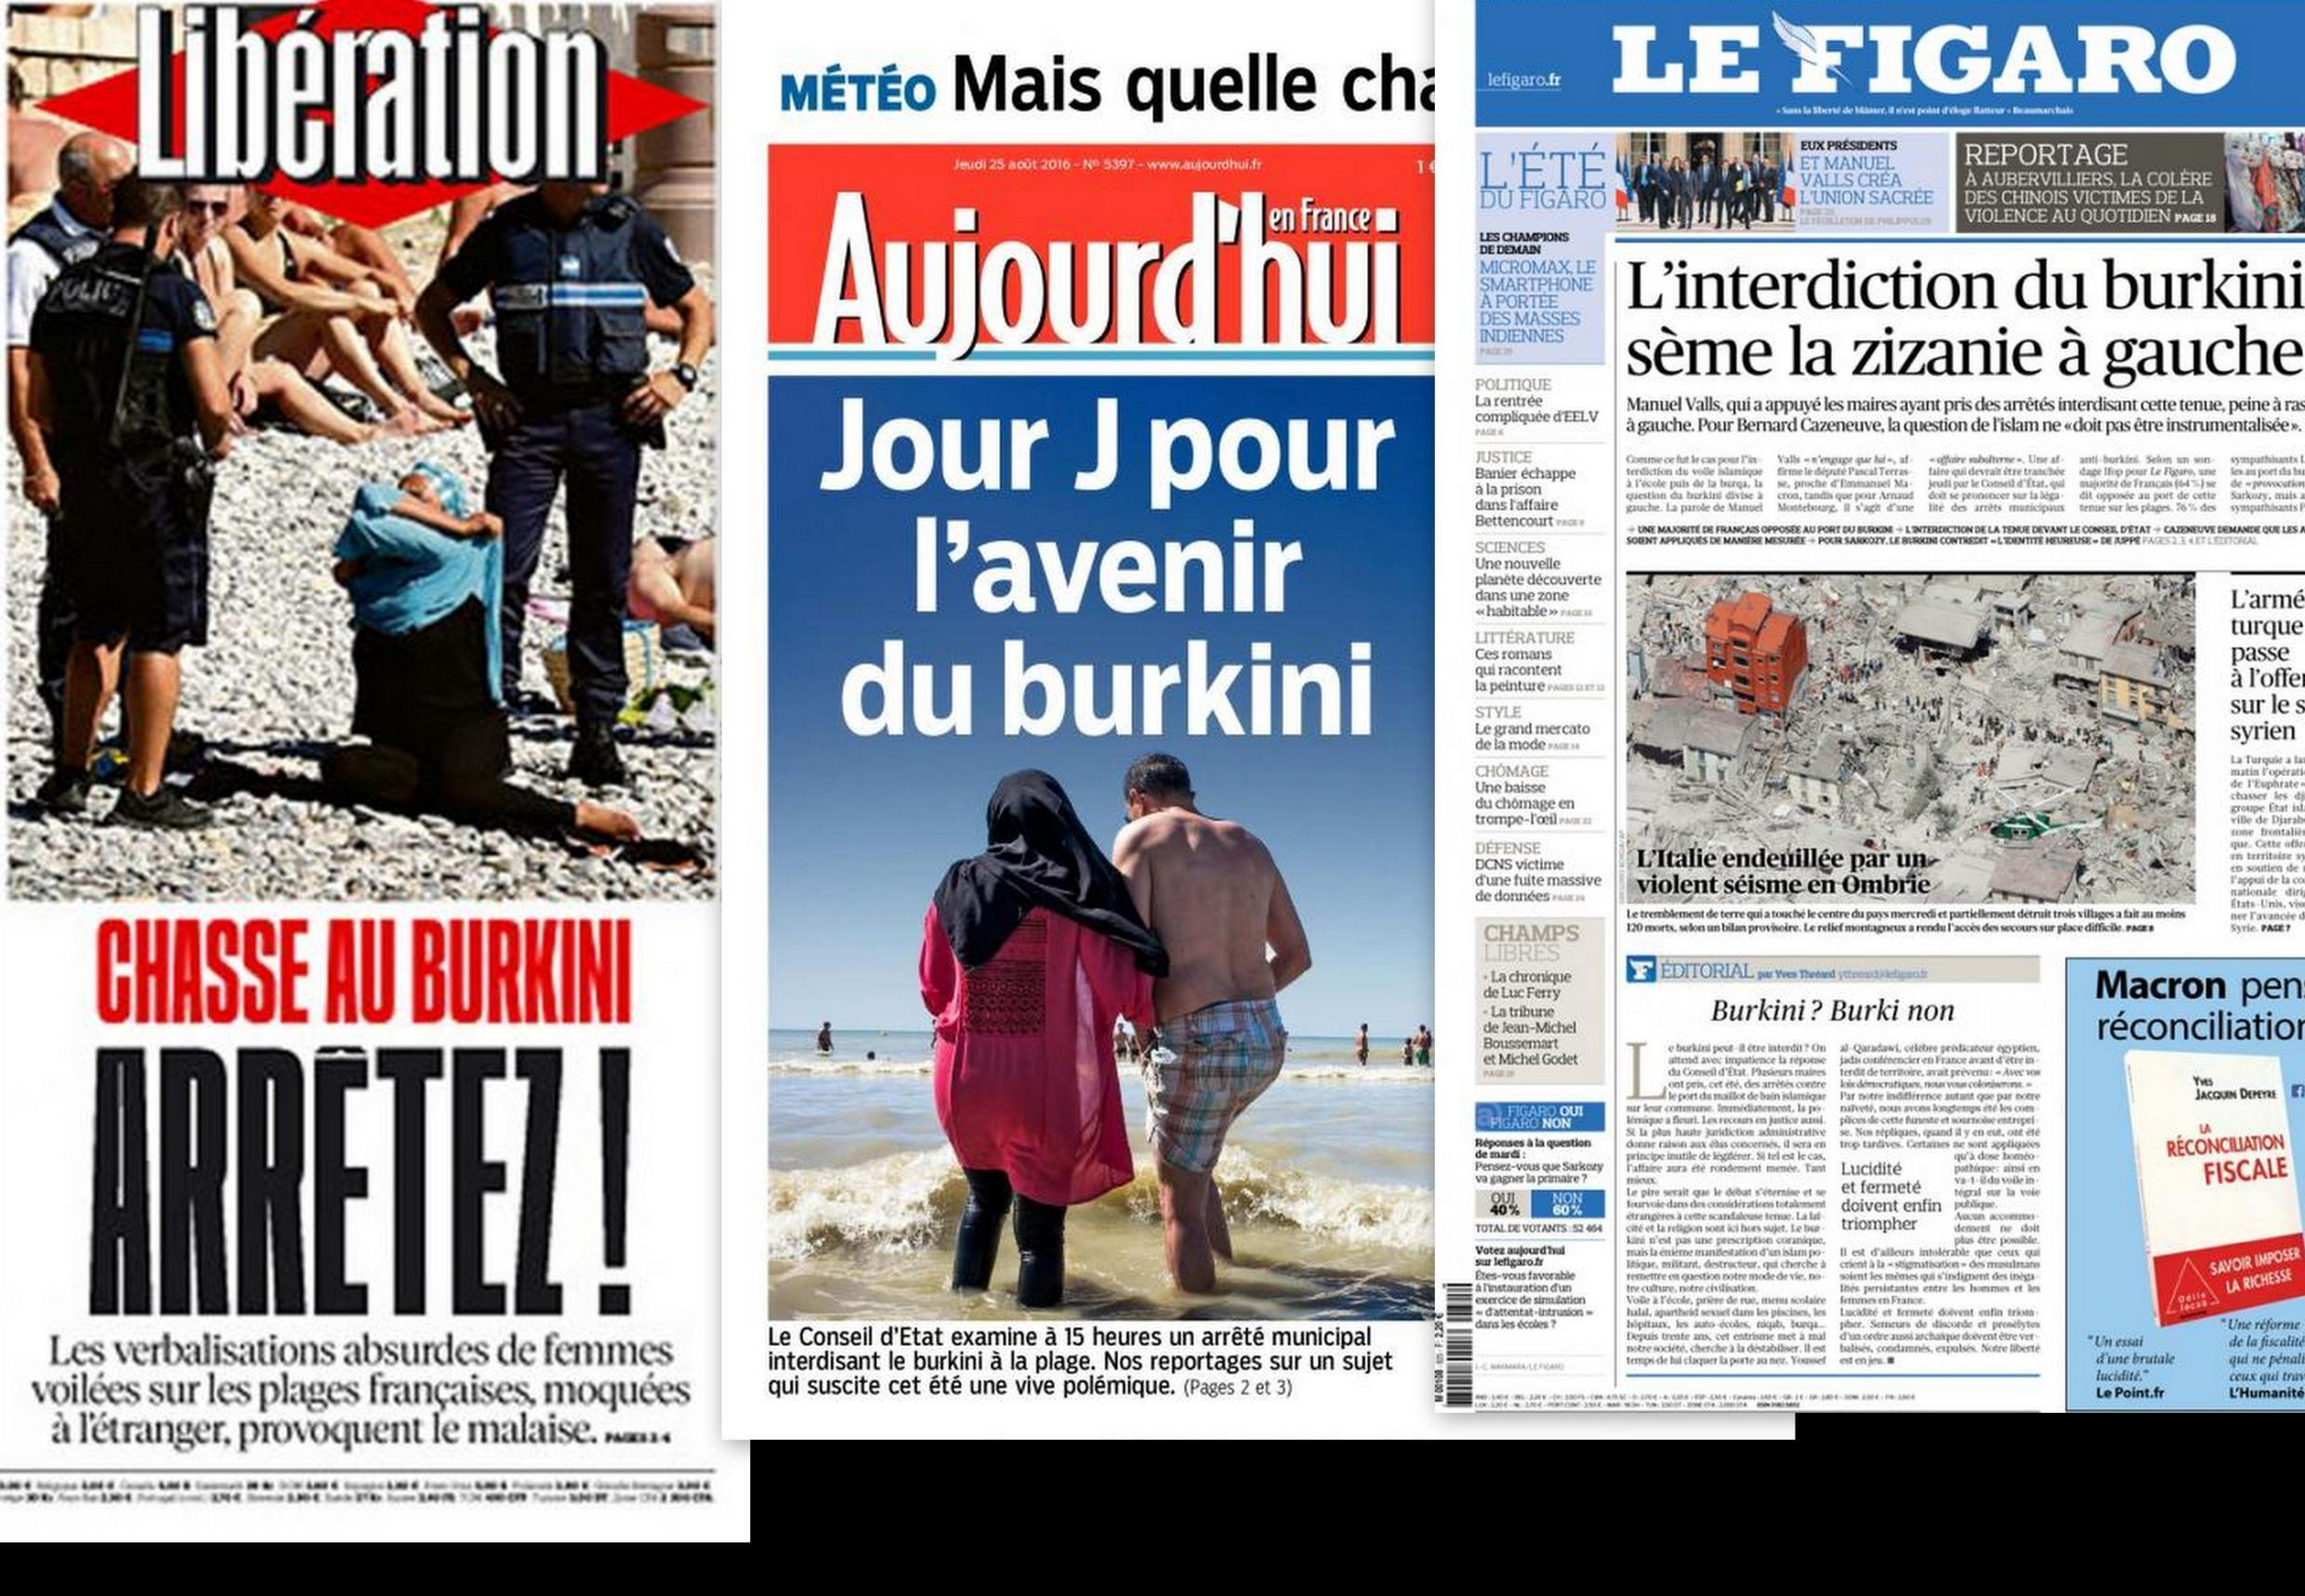 French newspapers' coverage of the burkini row